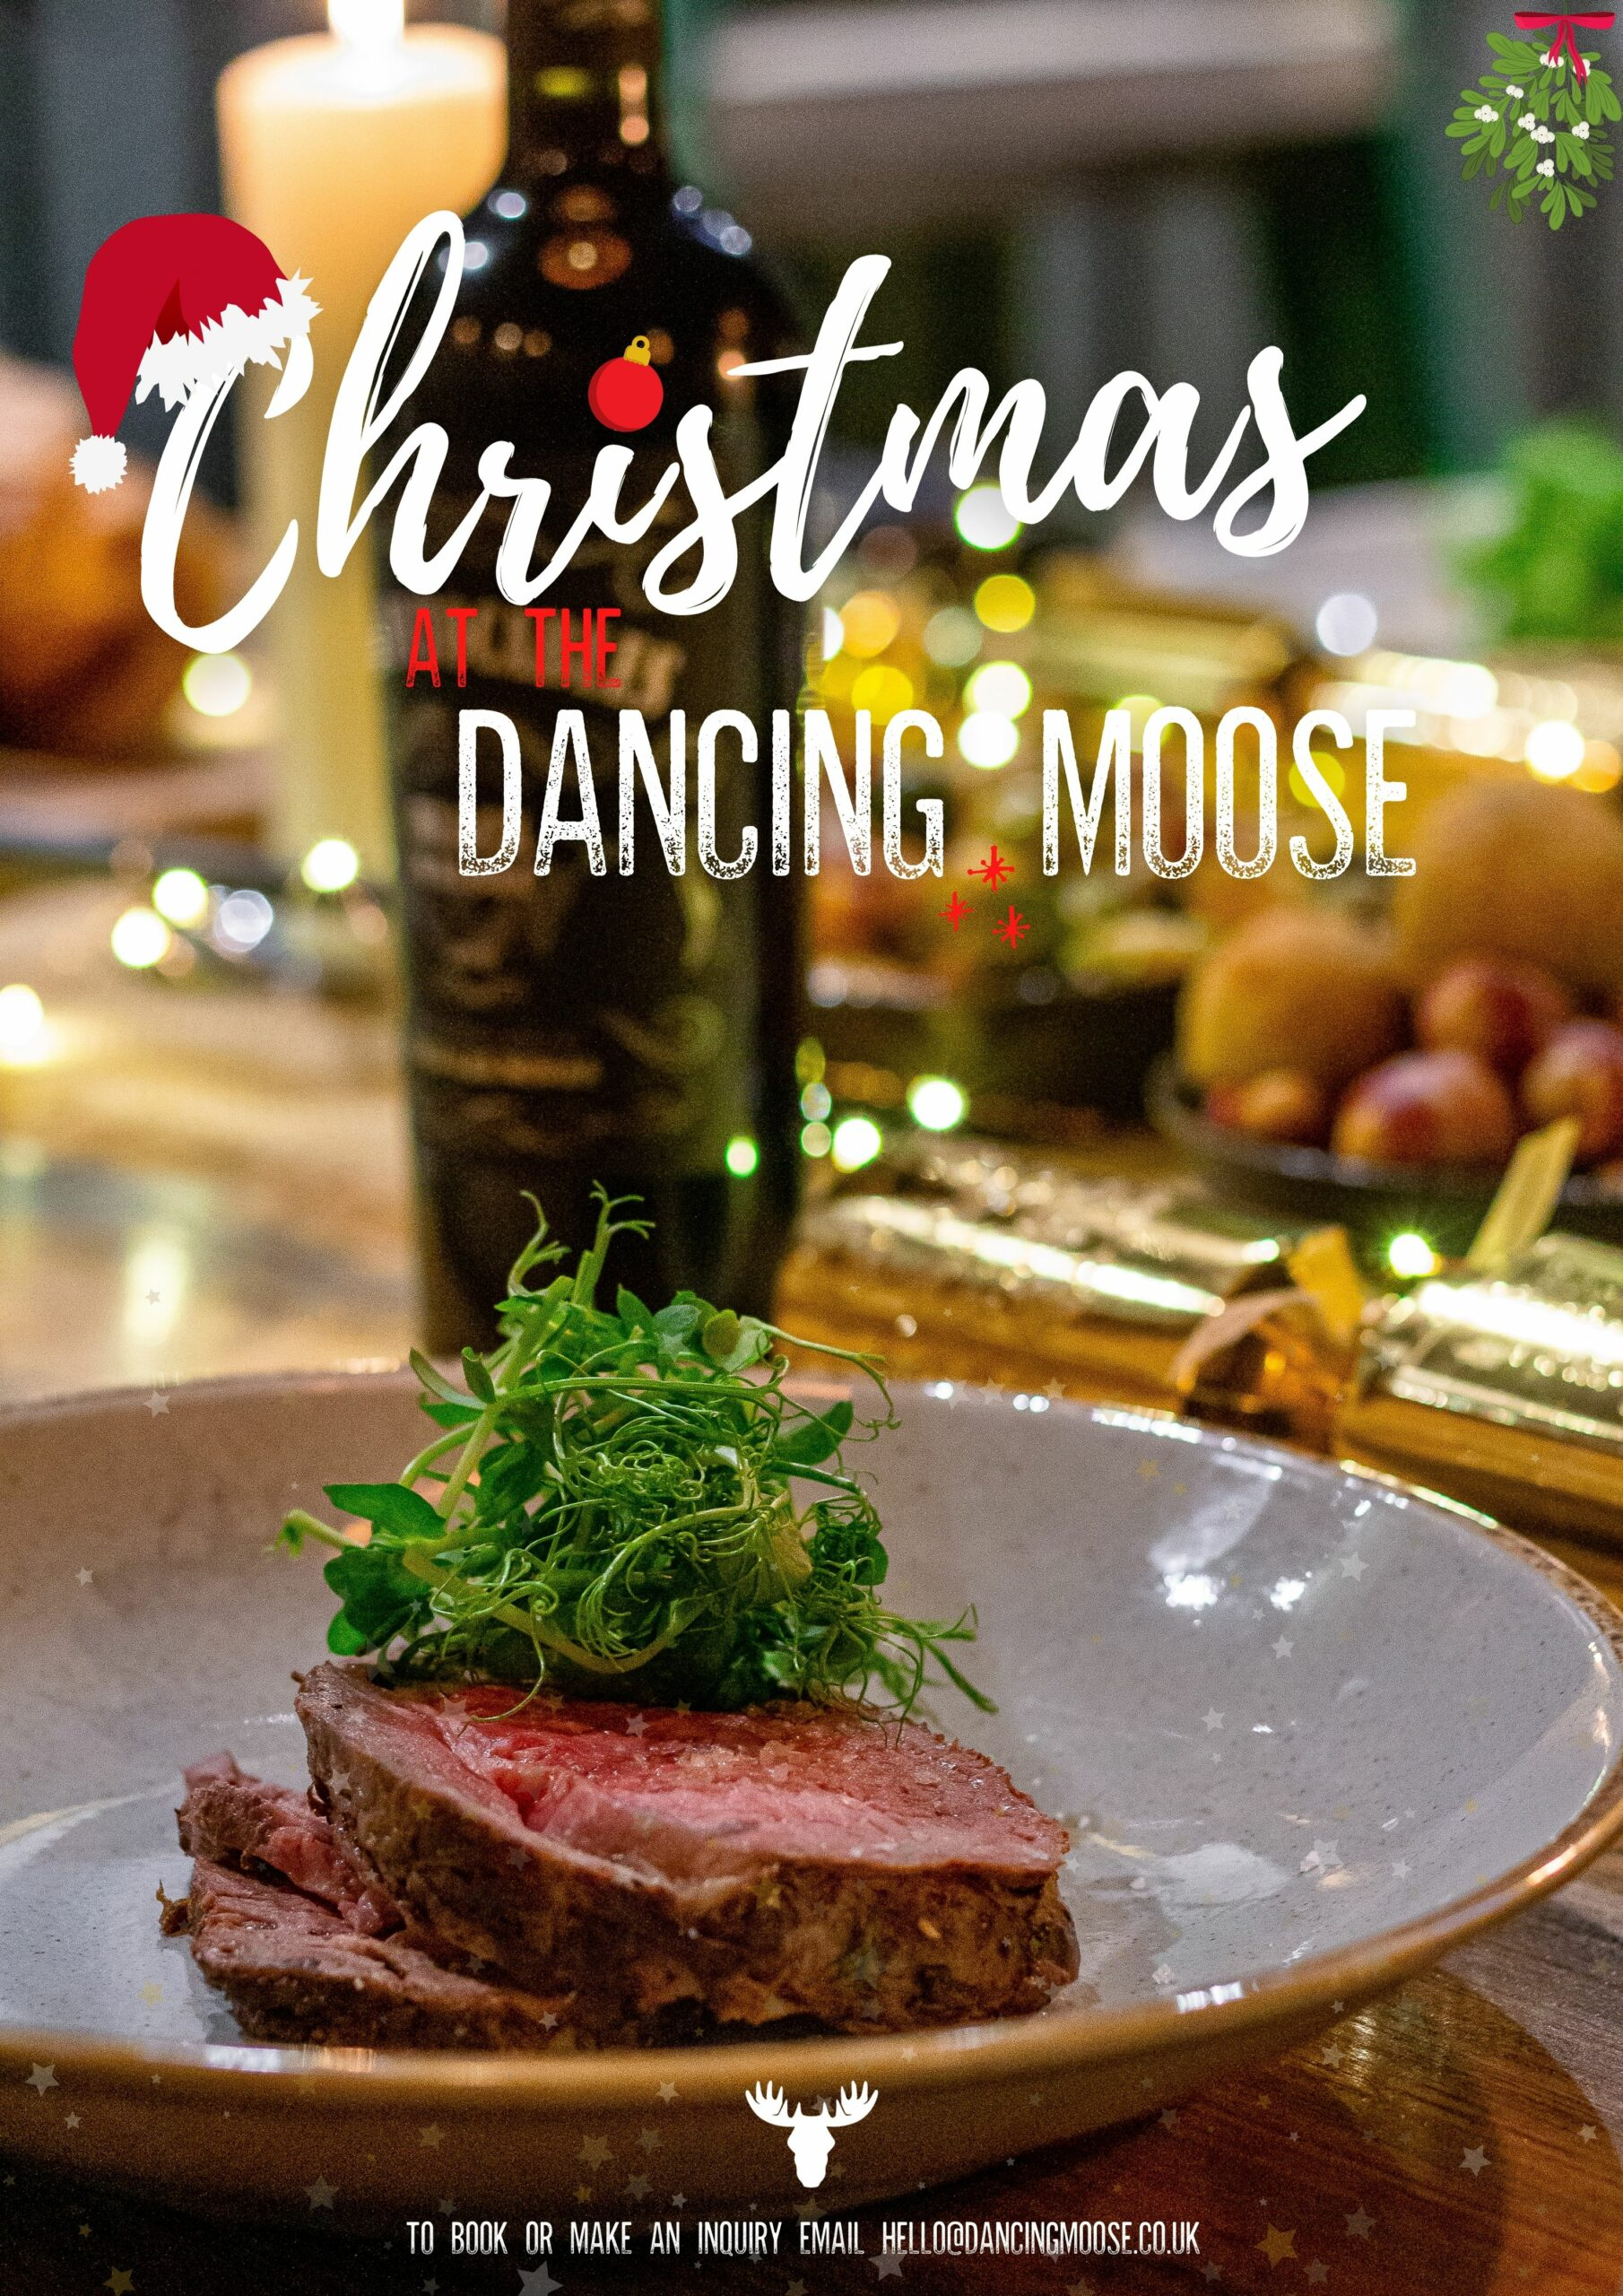 christmas, christmas menu, food, dancing moose, places to eat in bournemouth, christmas dinner, festive, xmas, crimbo